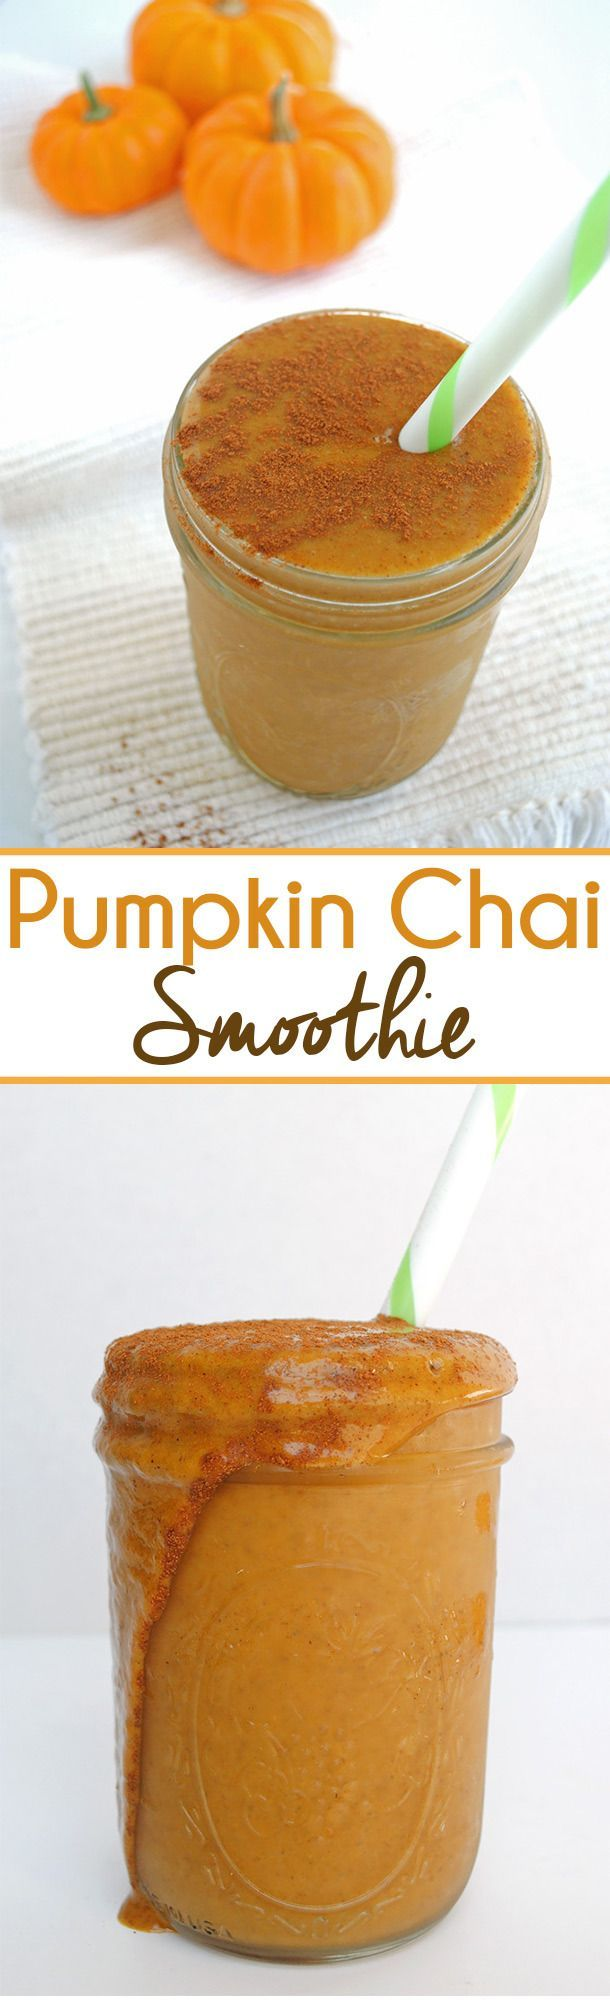 This Pumpkin Chai Smoothie is sweet with a hint of chai spice and great for a snack or healthy dessert! It's filled with all the warm fall flavors.